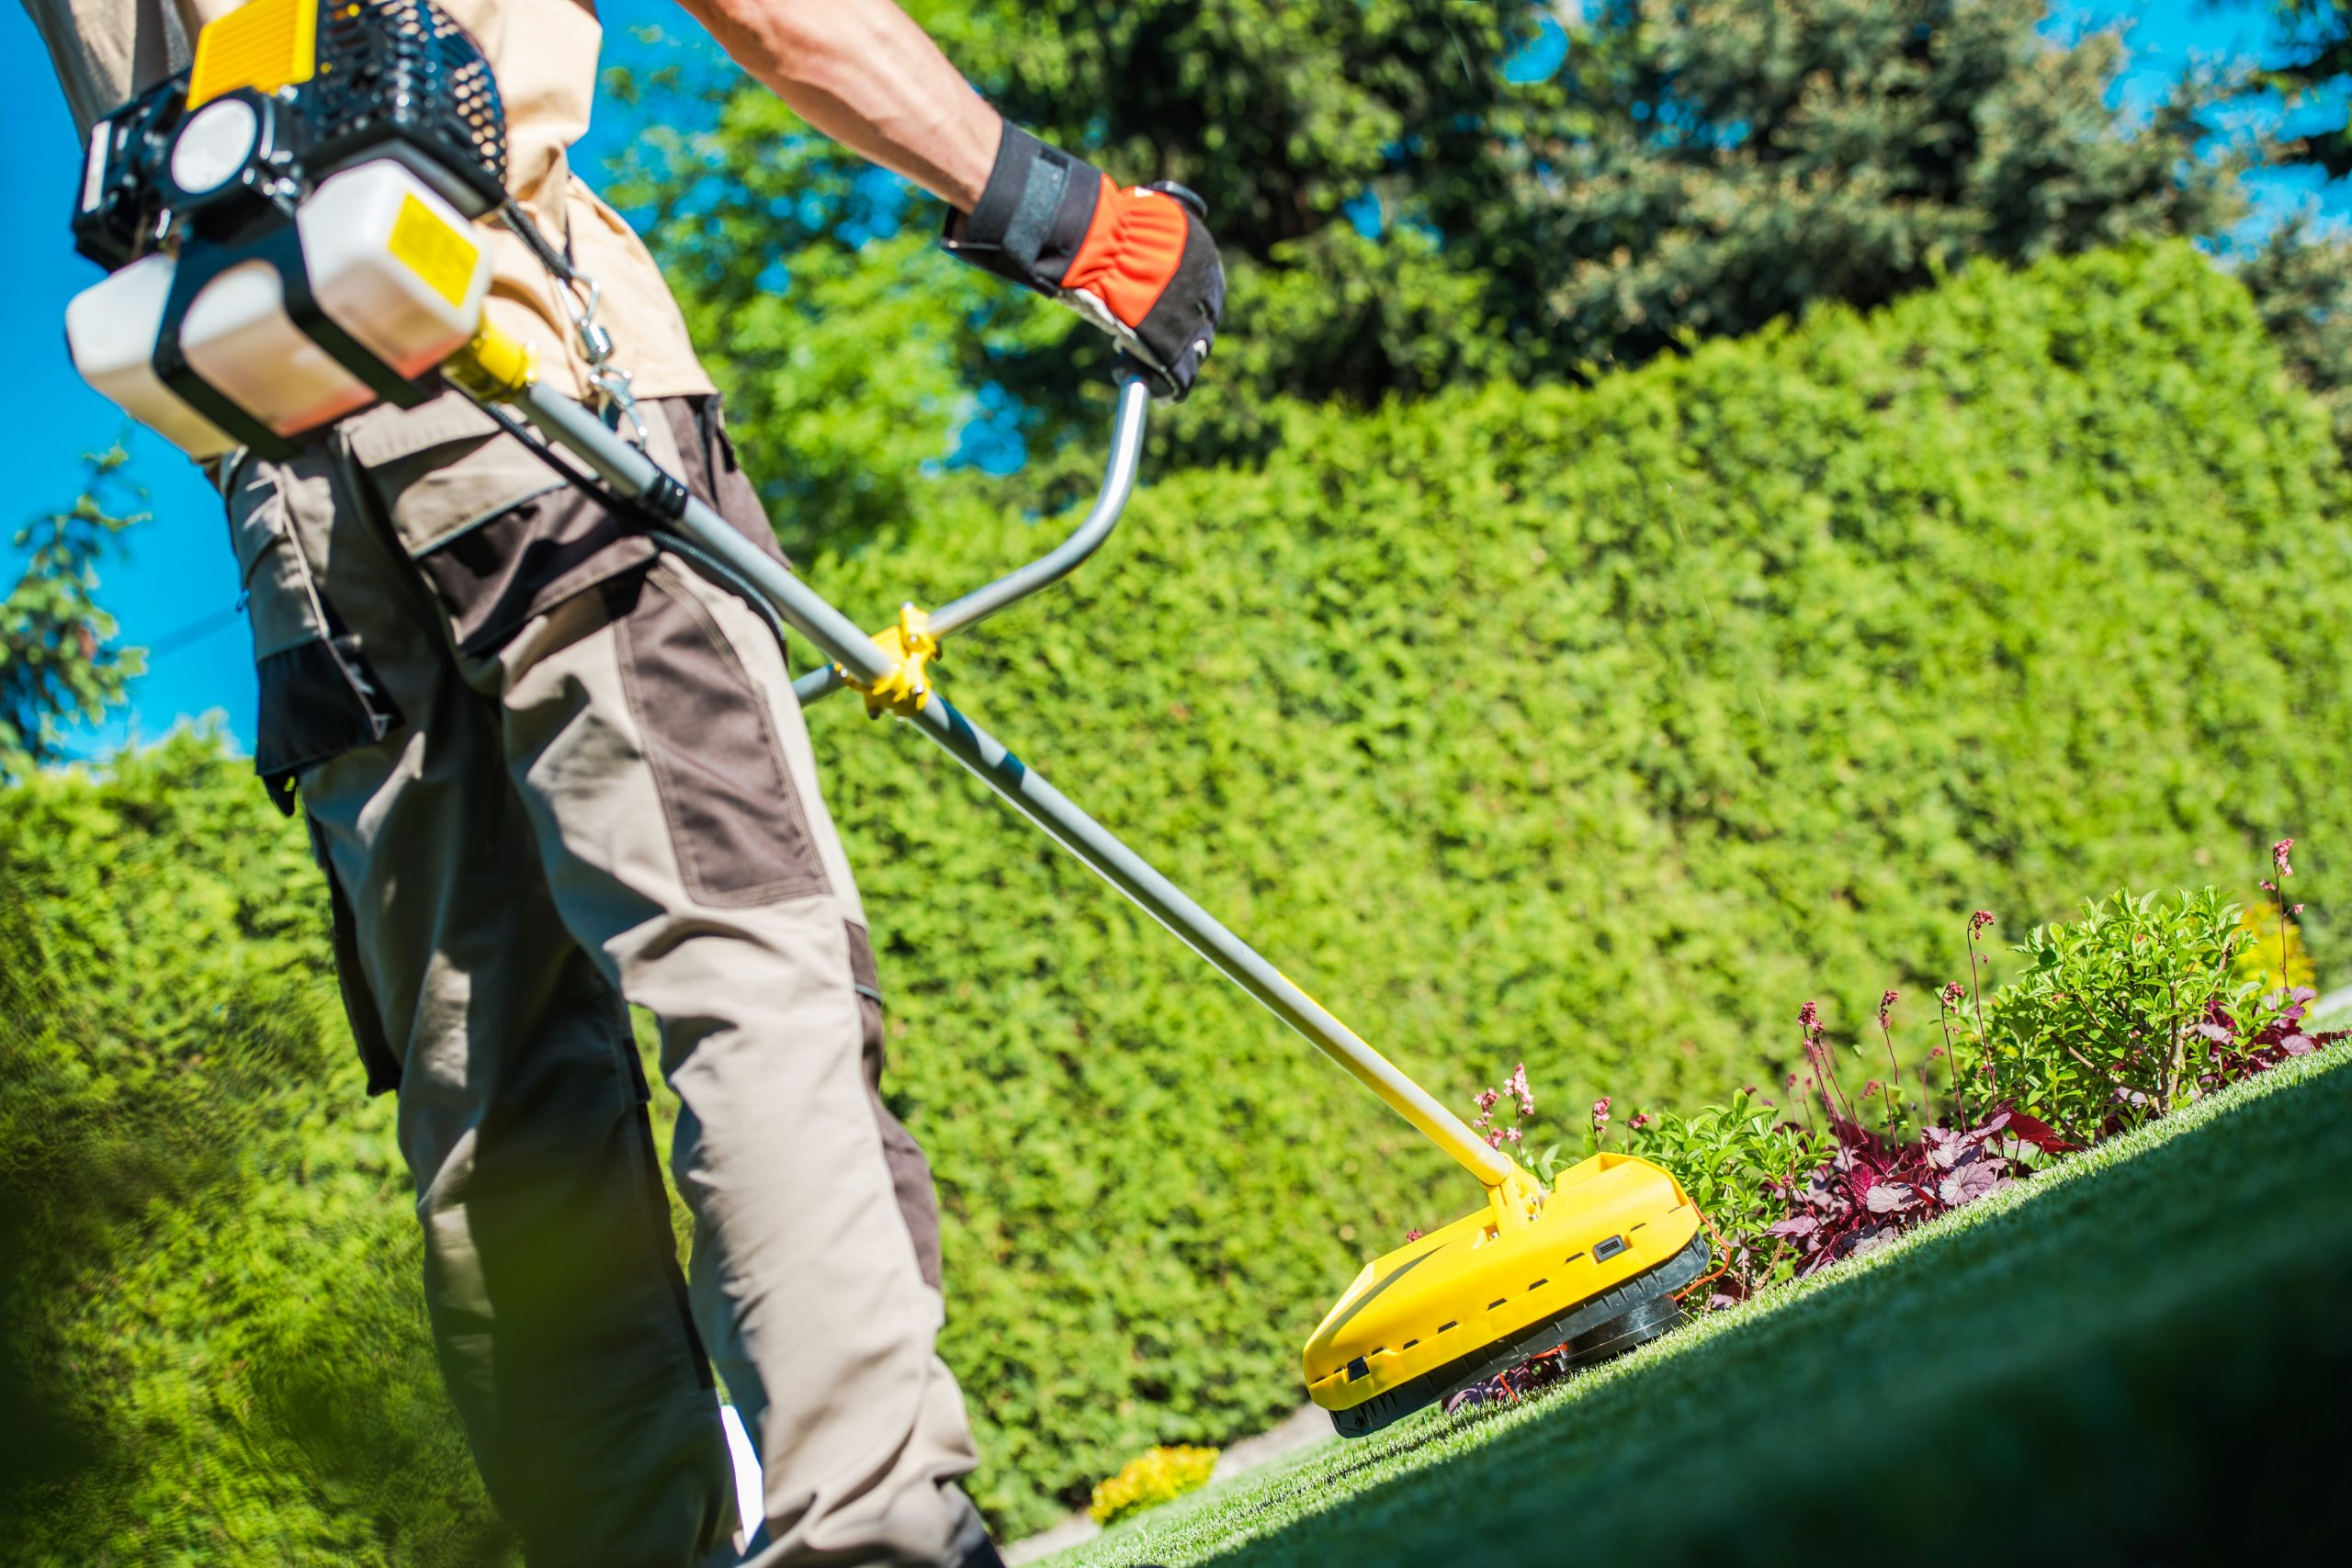 The Outdoor Power Tools That Will Make Your Summer Greener